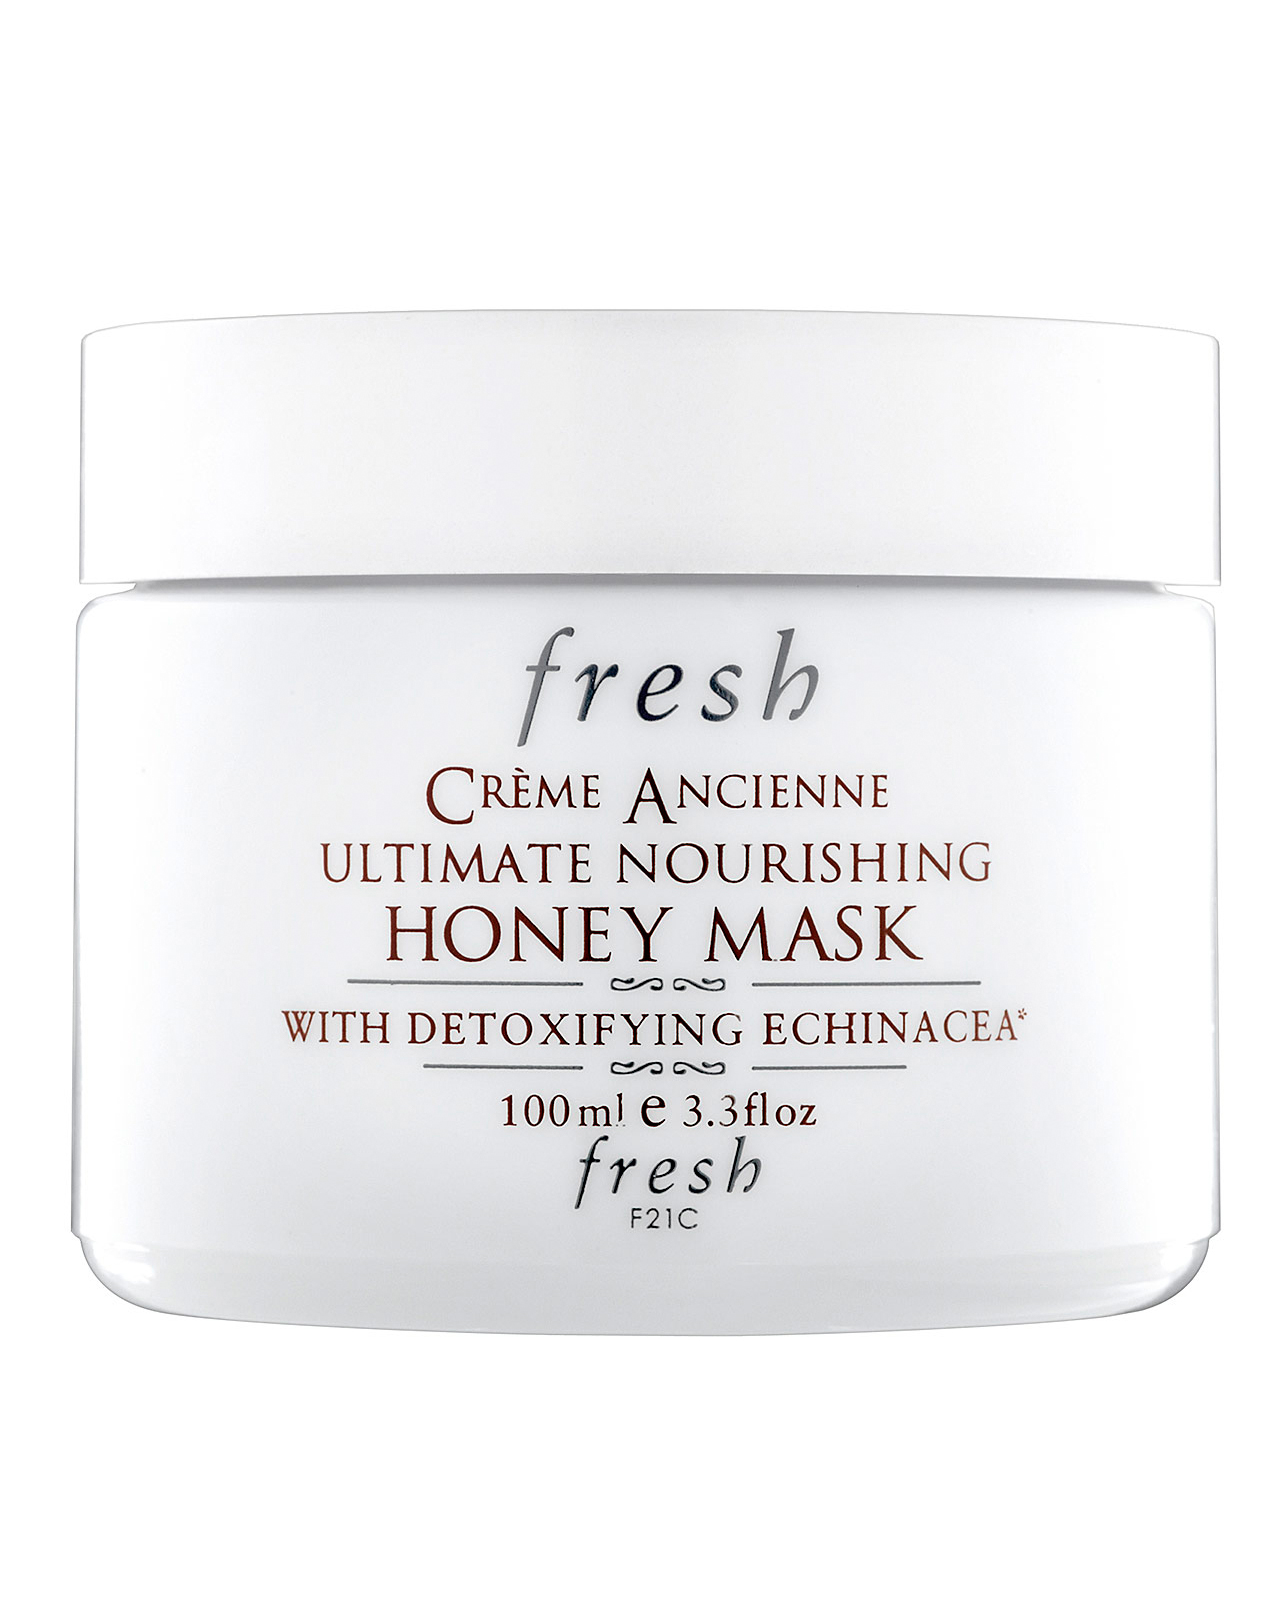 beauty-glowing-complexion-creme-ancienne-honey-mask-0914.jpg